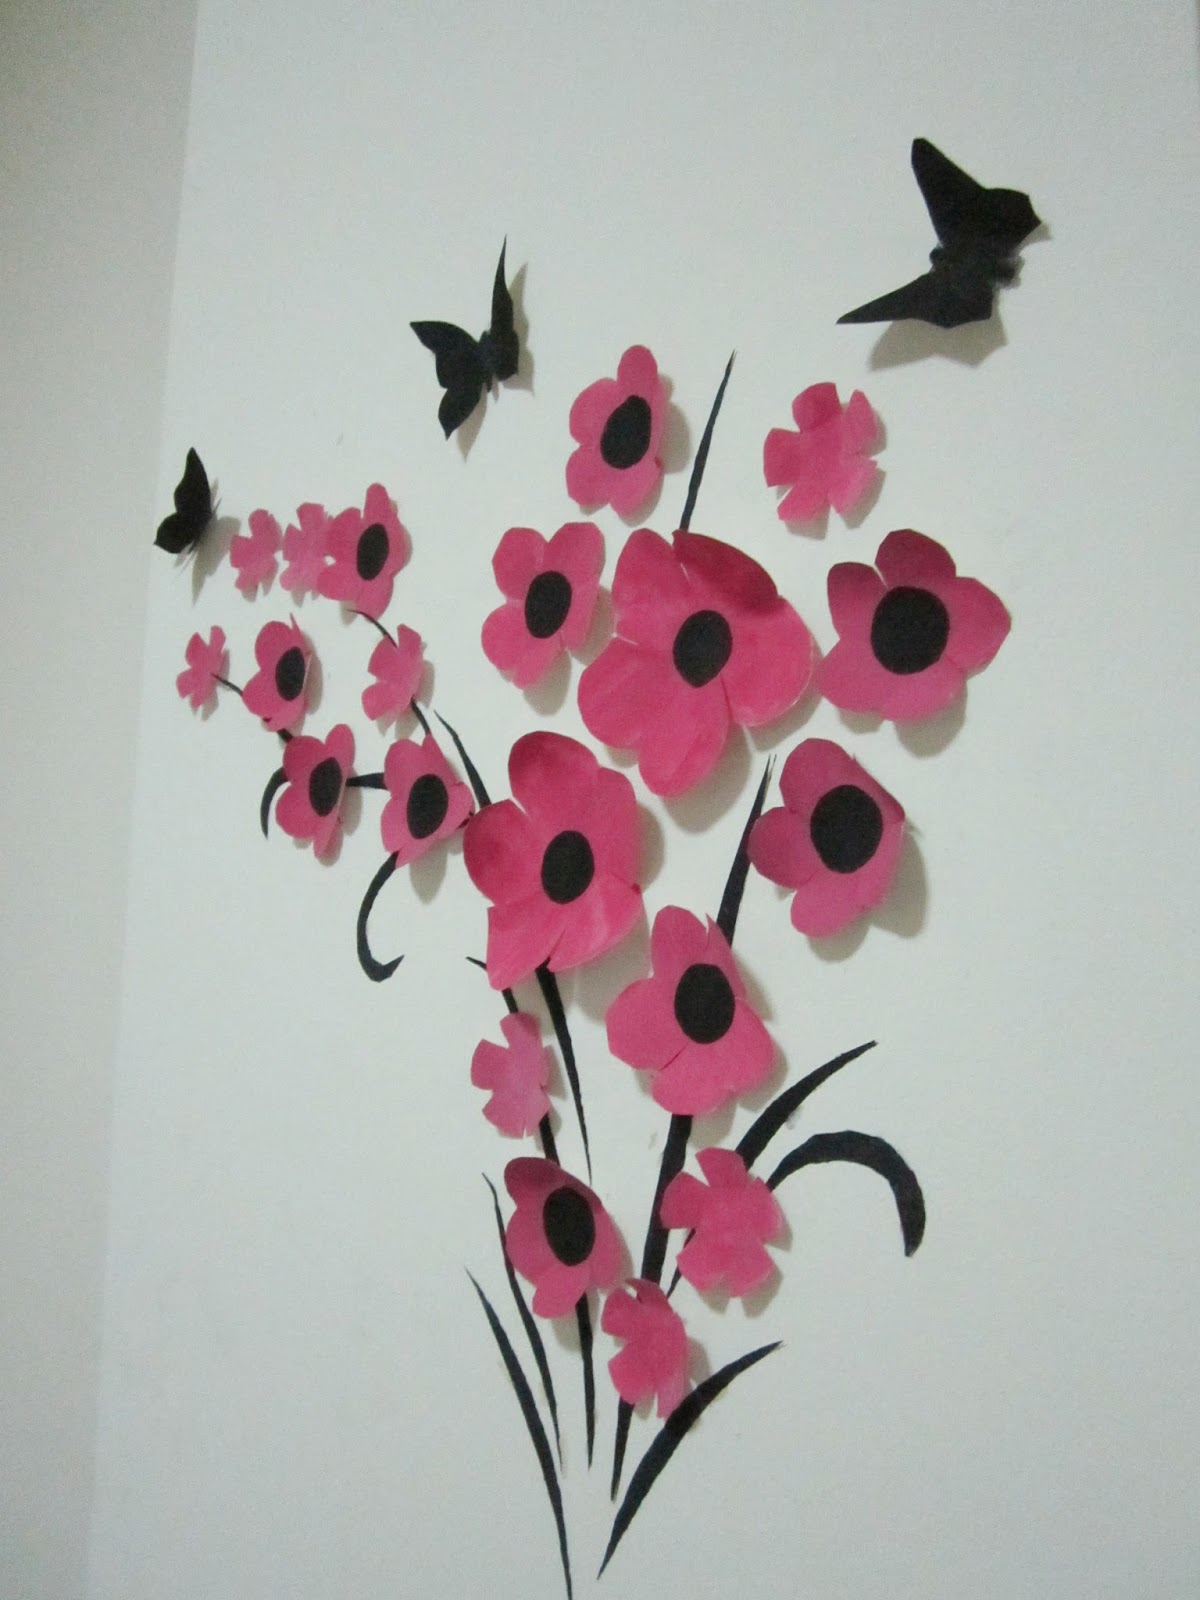 Floral wall art - A little love everyday!